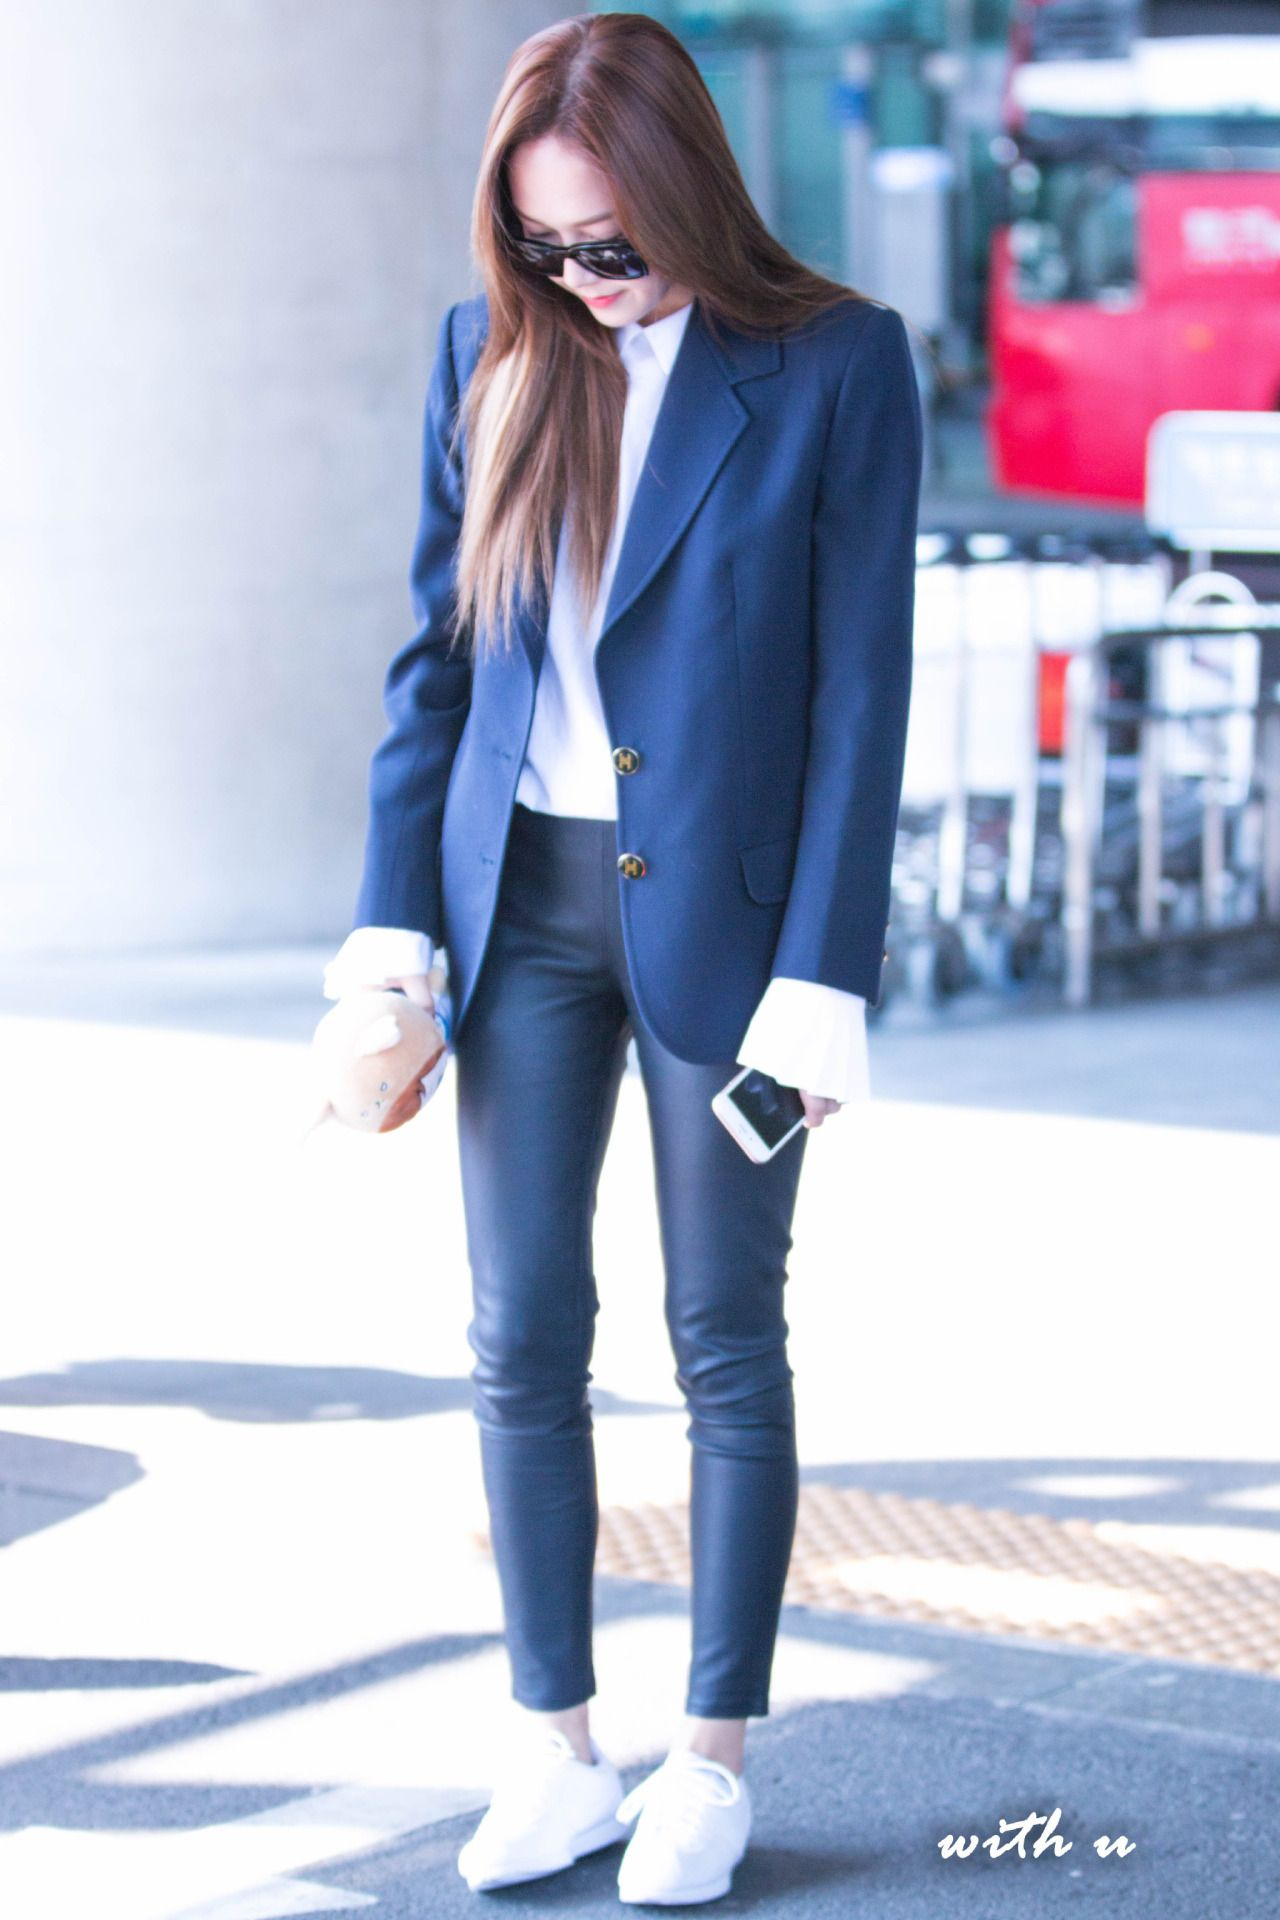 Xojessi Jessica Jung 39 S Airport Fashion Pinterest Jessica Jung Airport Fashion And Snsd